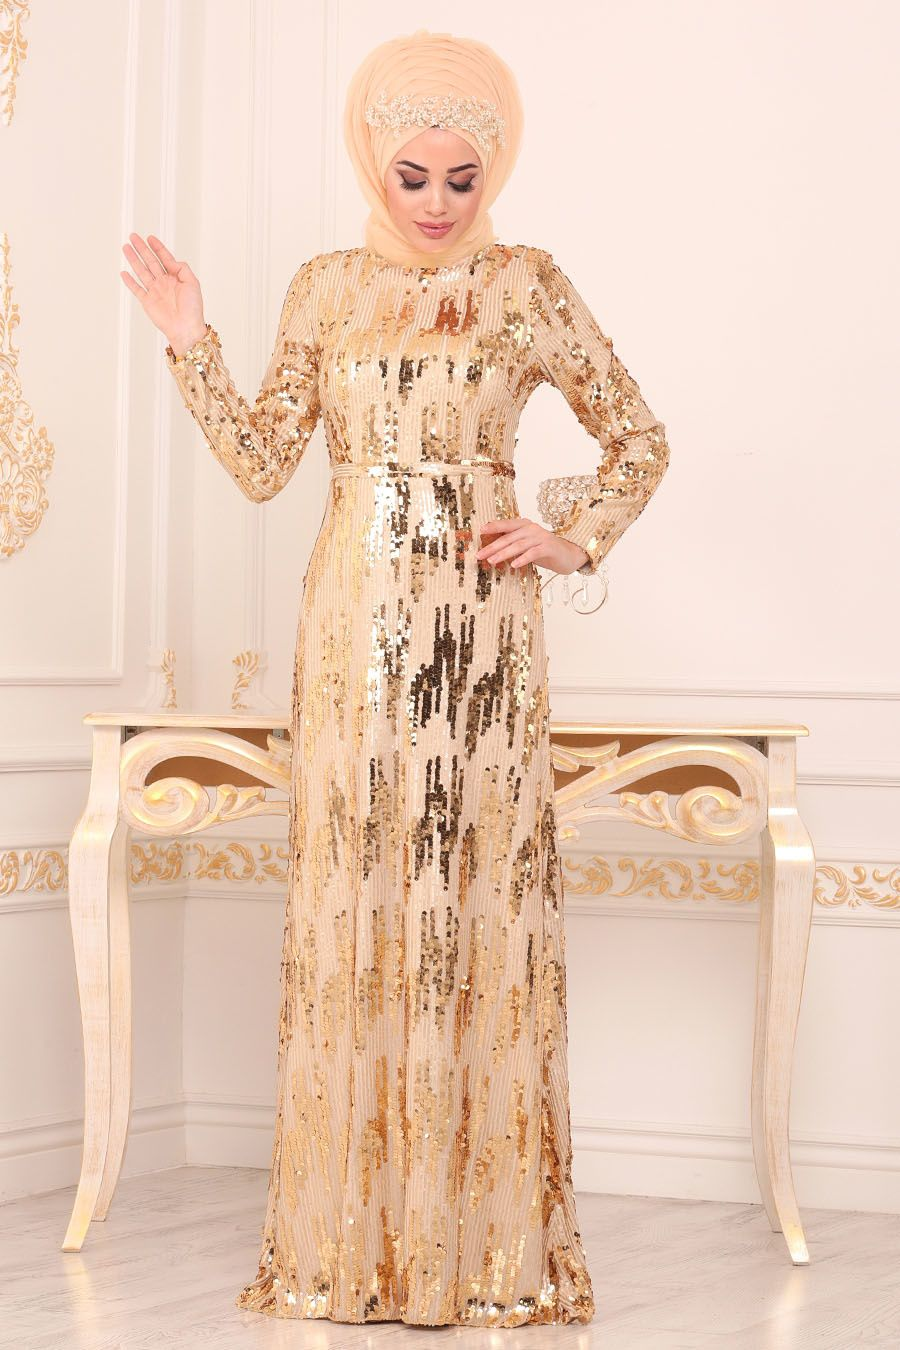 Nayla Collection Pul Payetli Gold Tesettur Abiye Elbise 9110gold Tesetturisland Com Elbise The Dress Mankenler